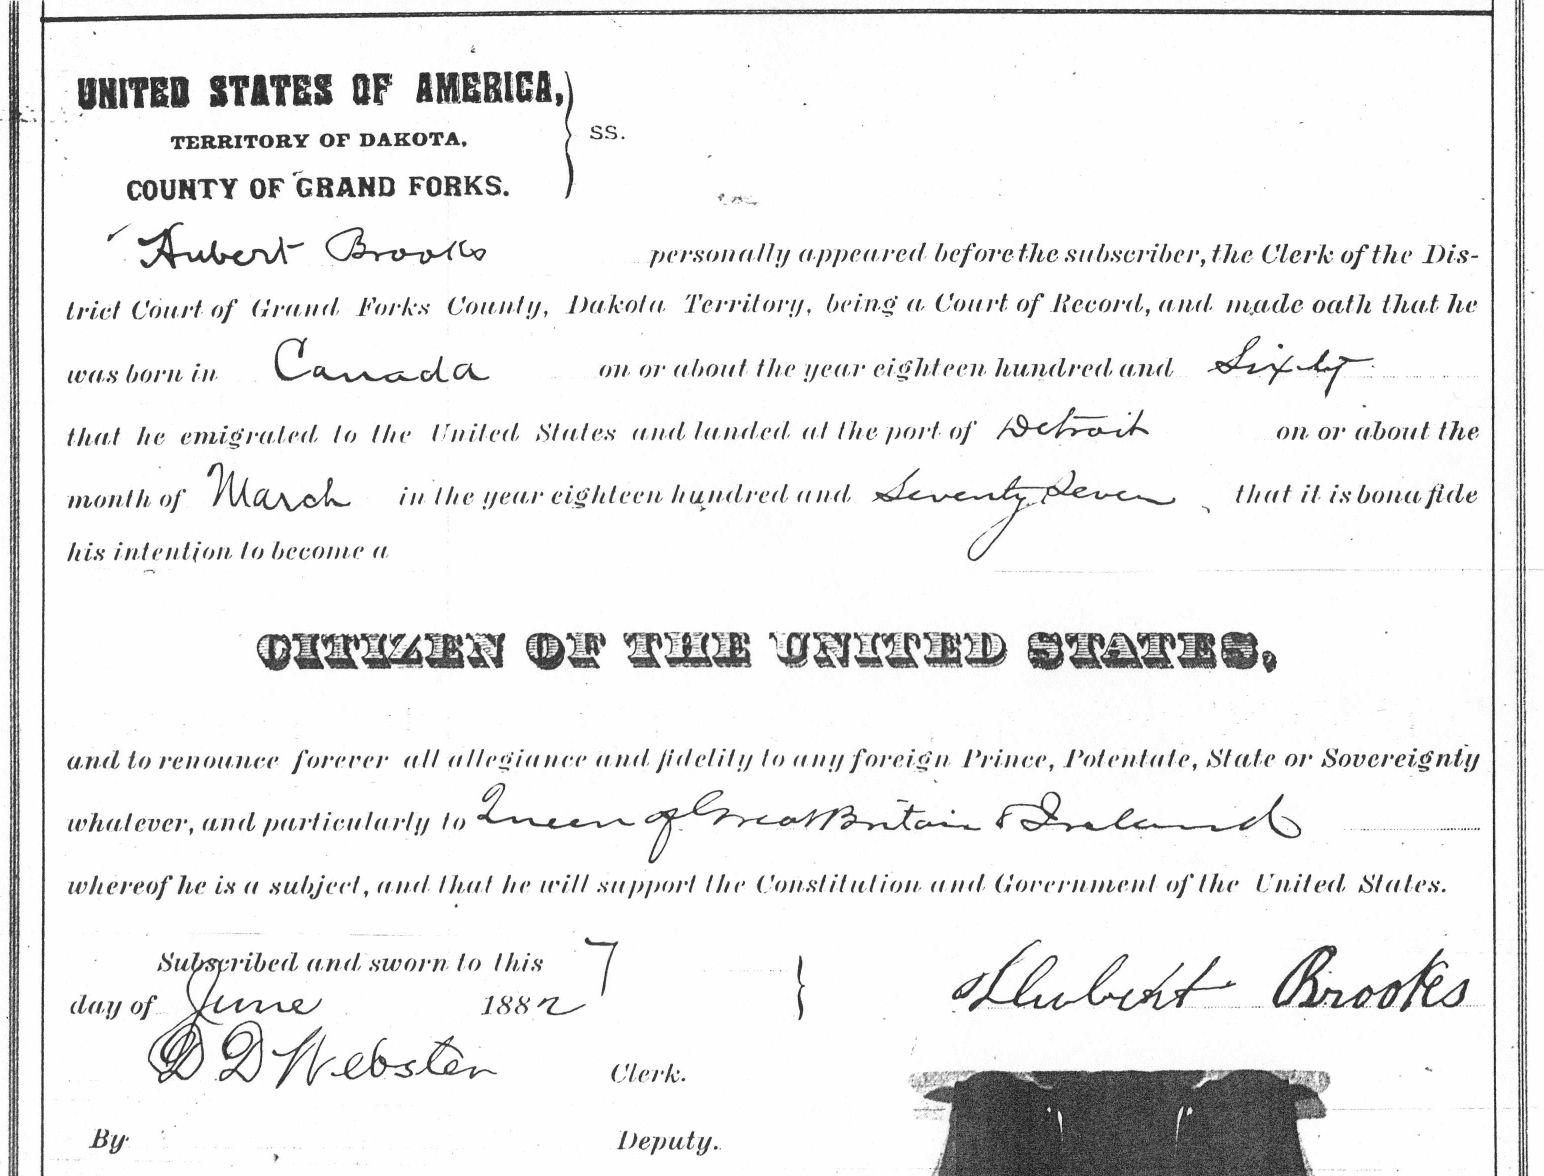 Hubert Brooks 1st filing for US Naturalization